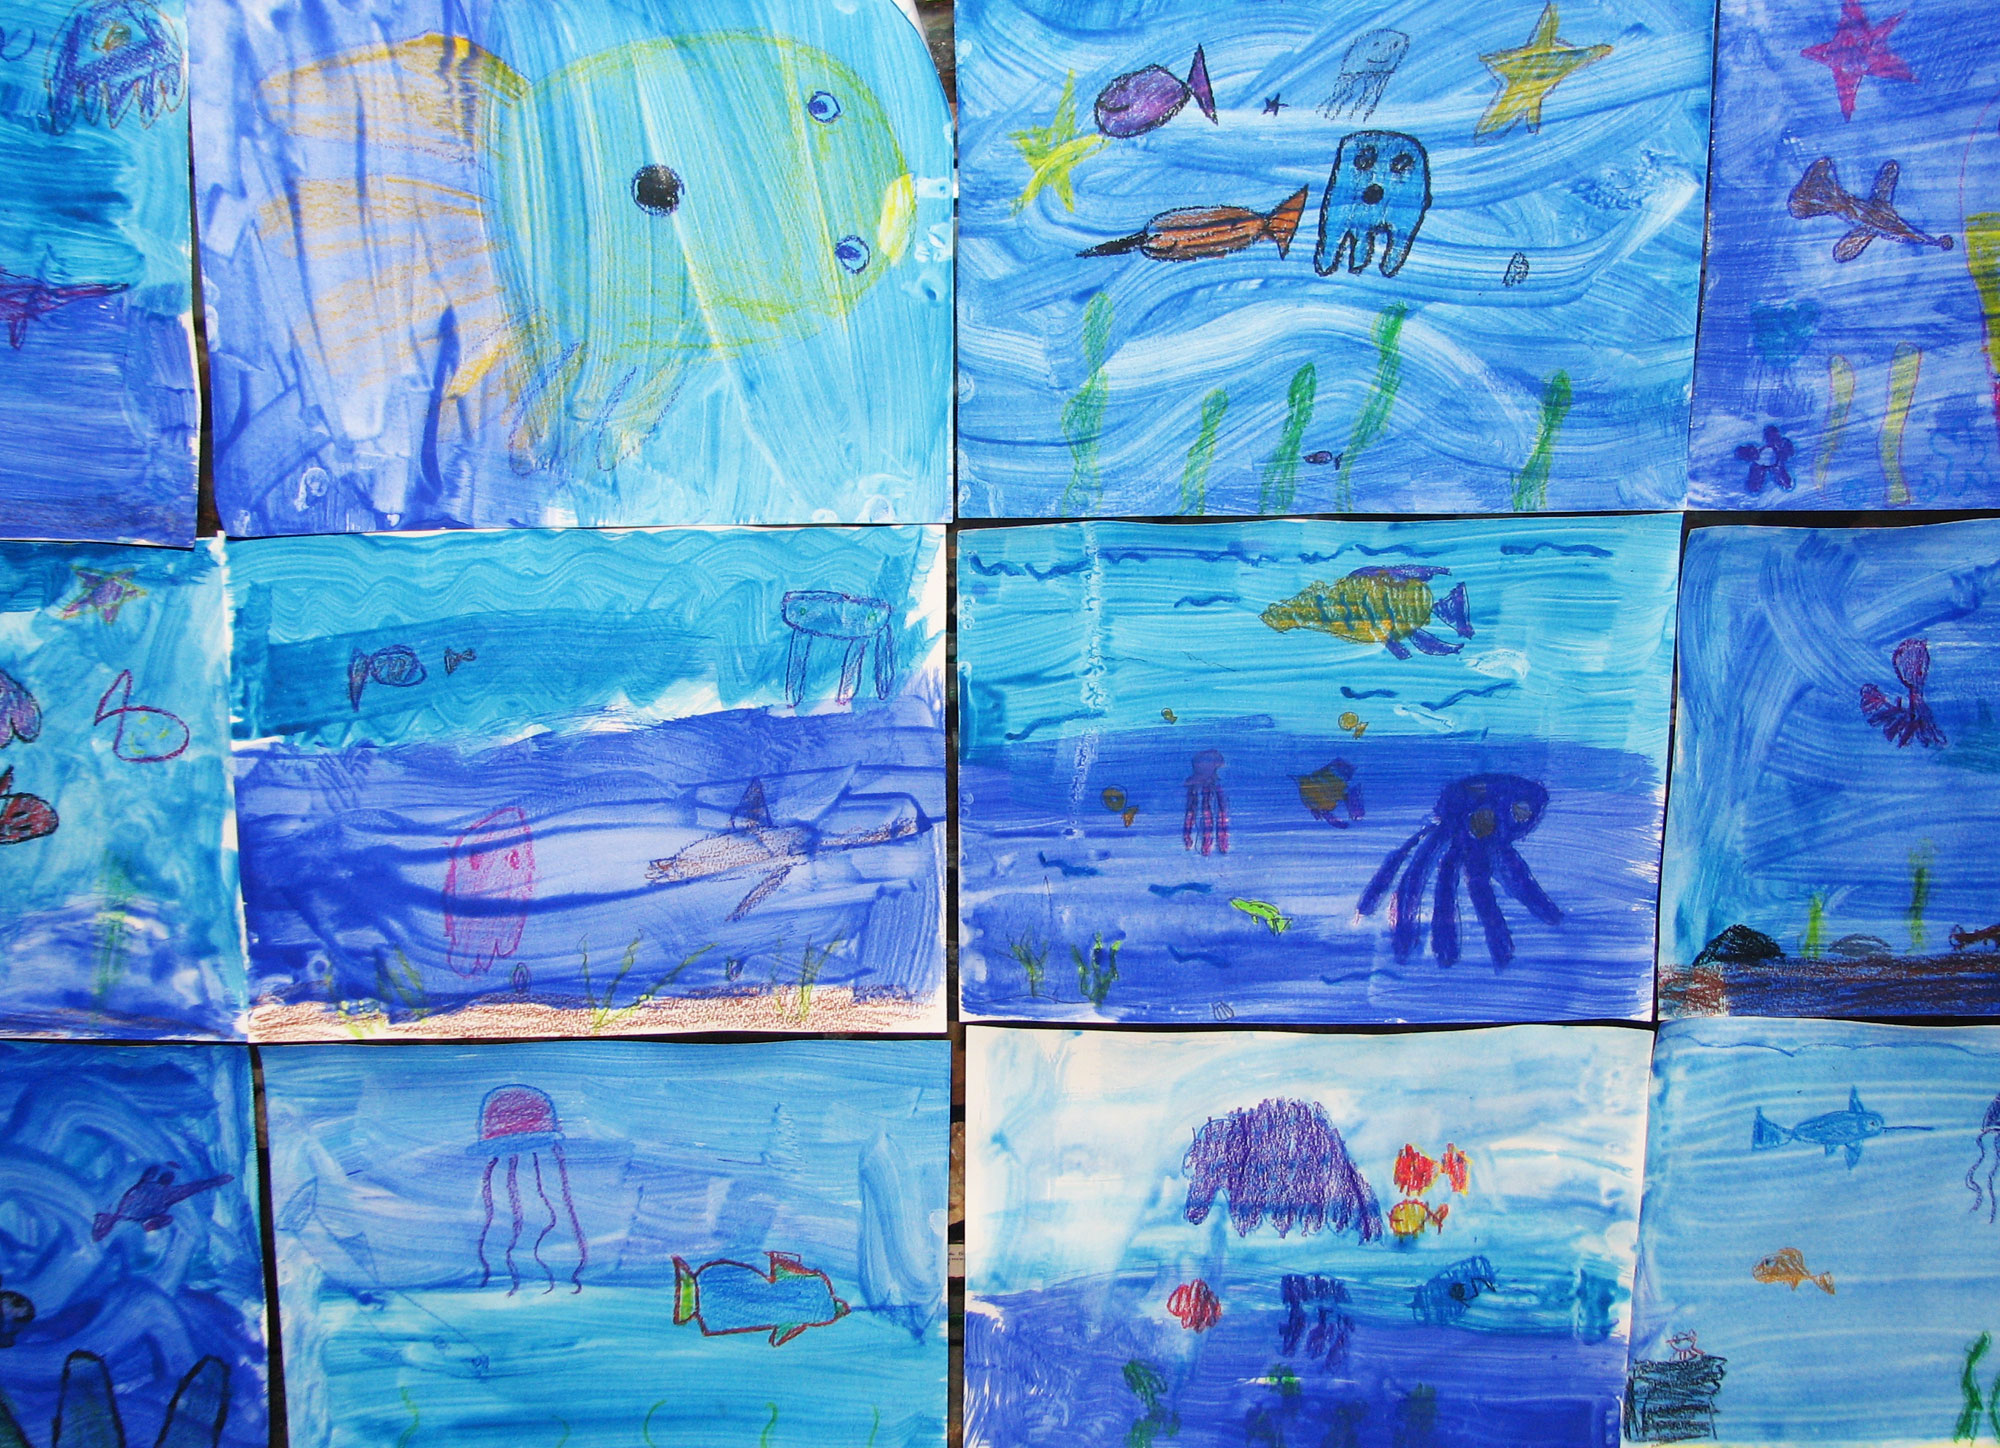 Crayon resist fish lesson plan for elementary students.